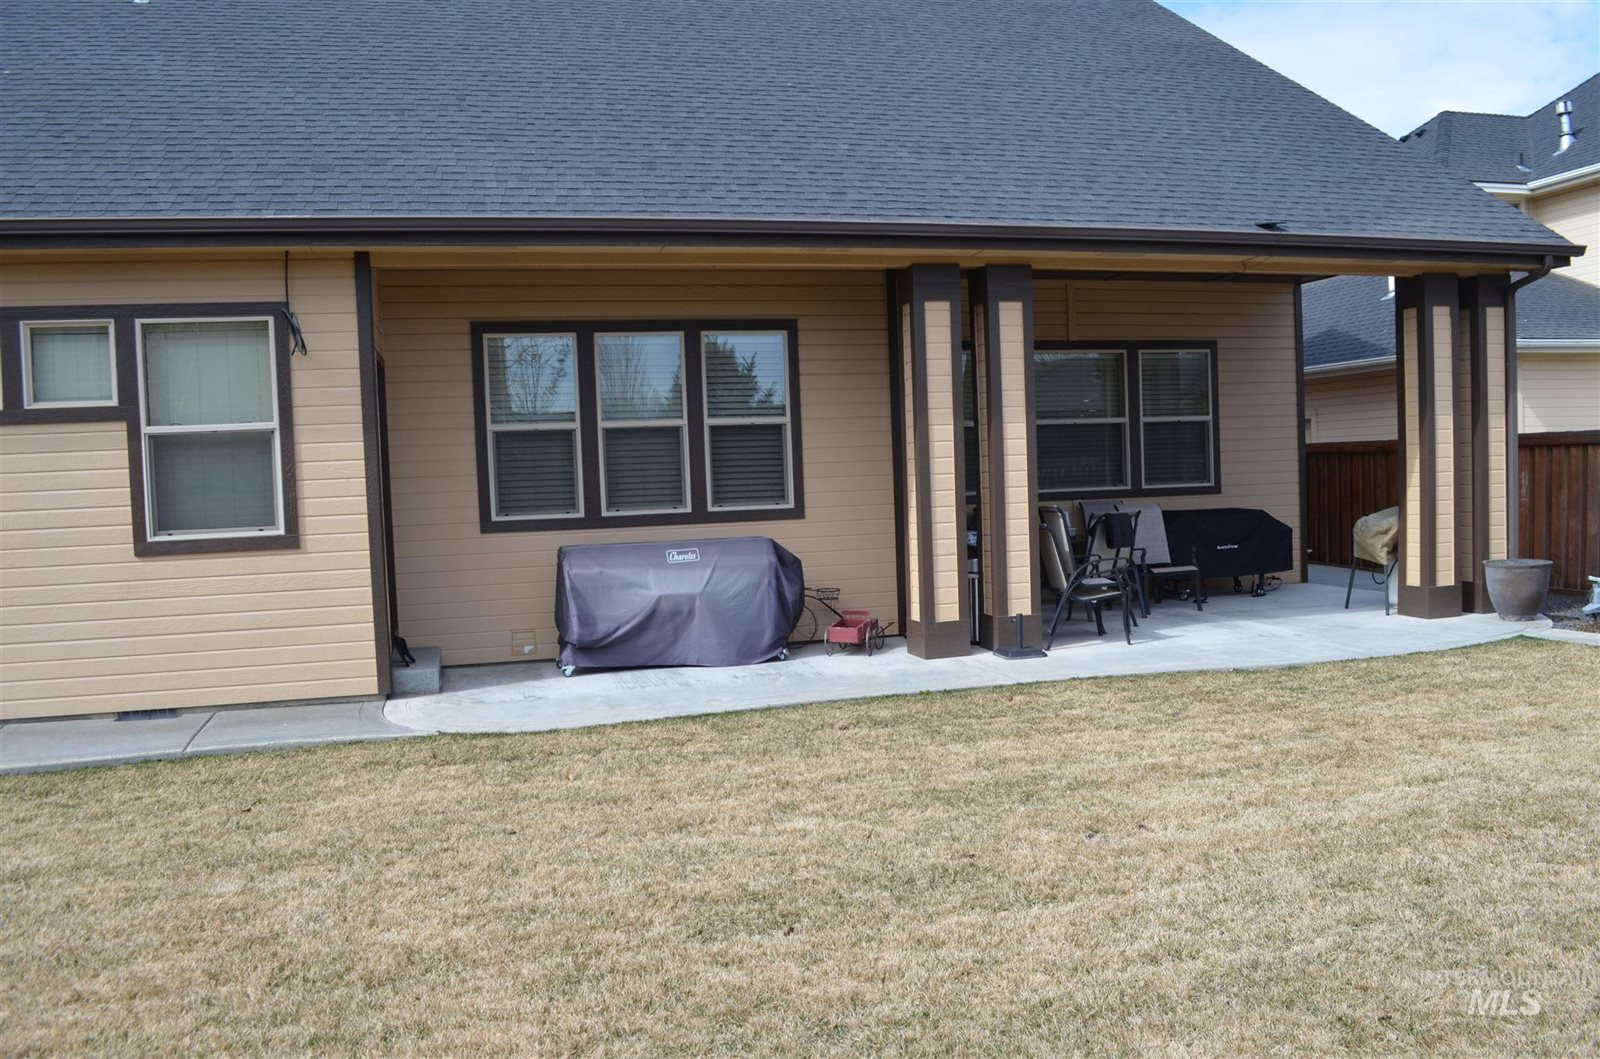 5796 North Rosa Springs Ave, #5796, Meridian, ID 83646